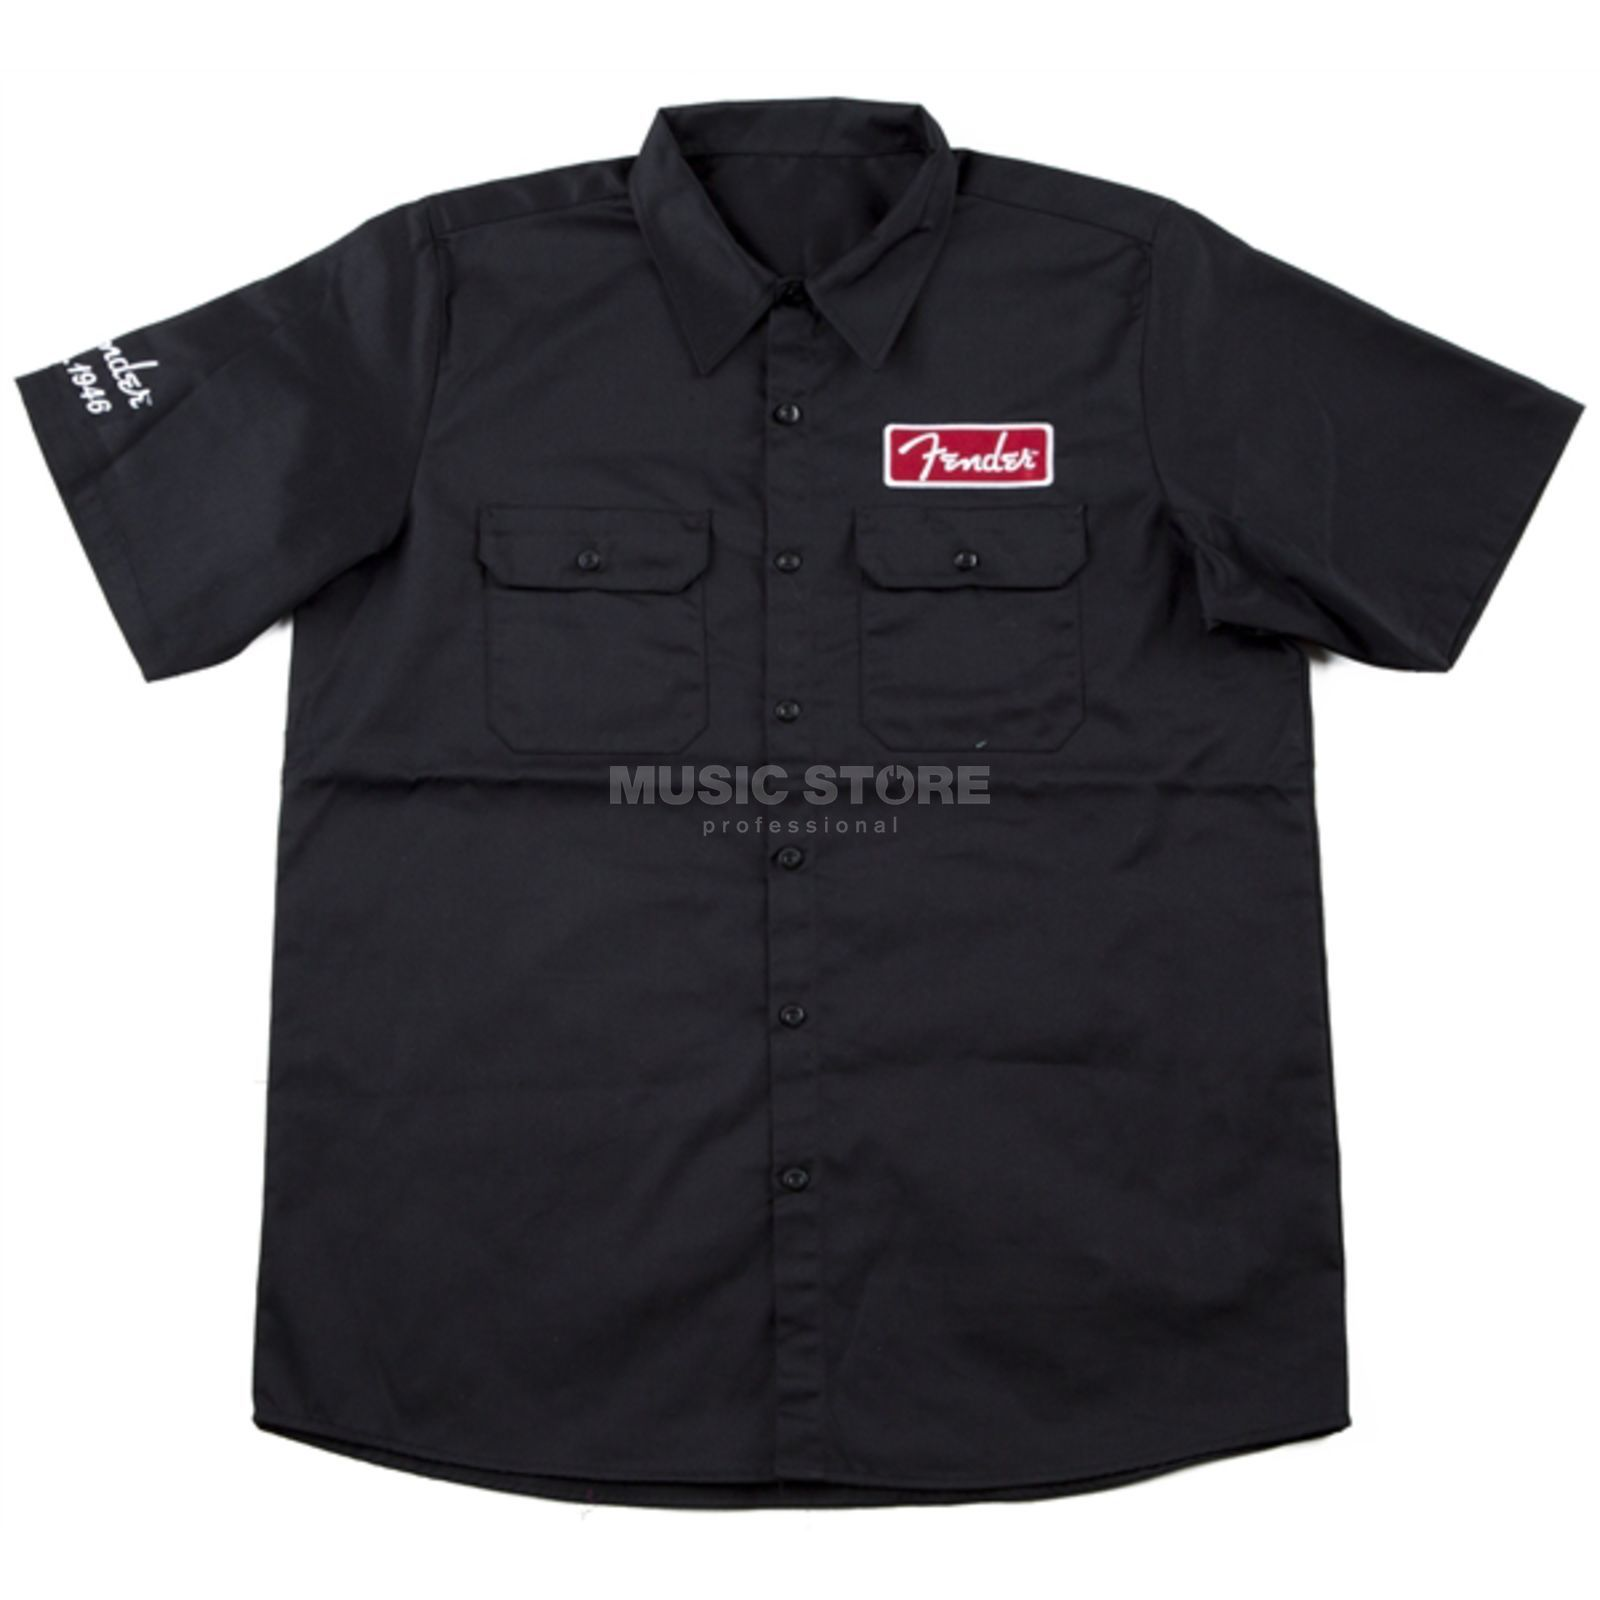 Fender Workshirt XXL Black Изображение товара